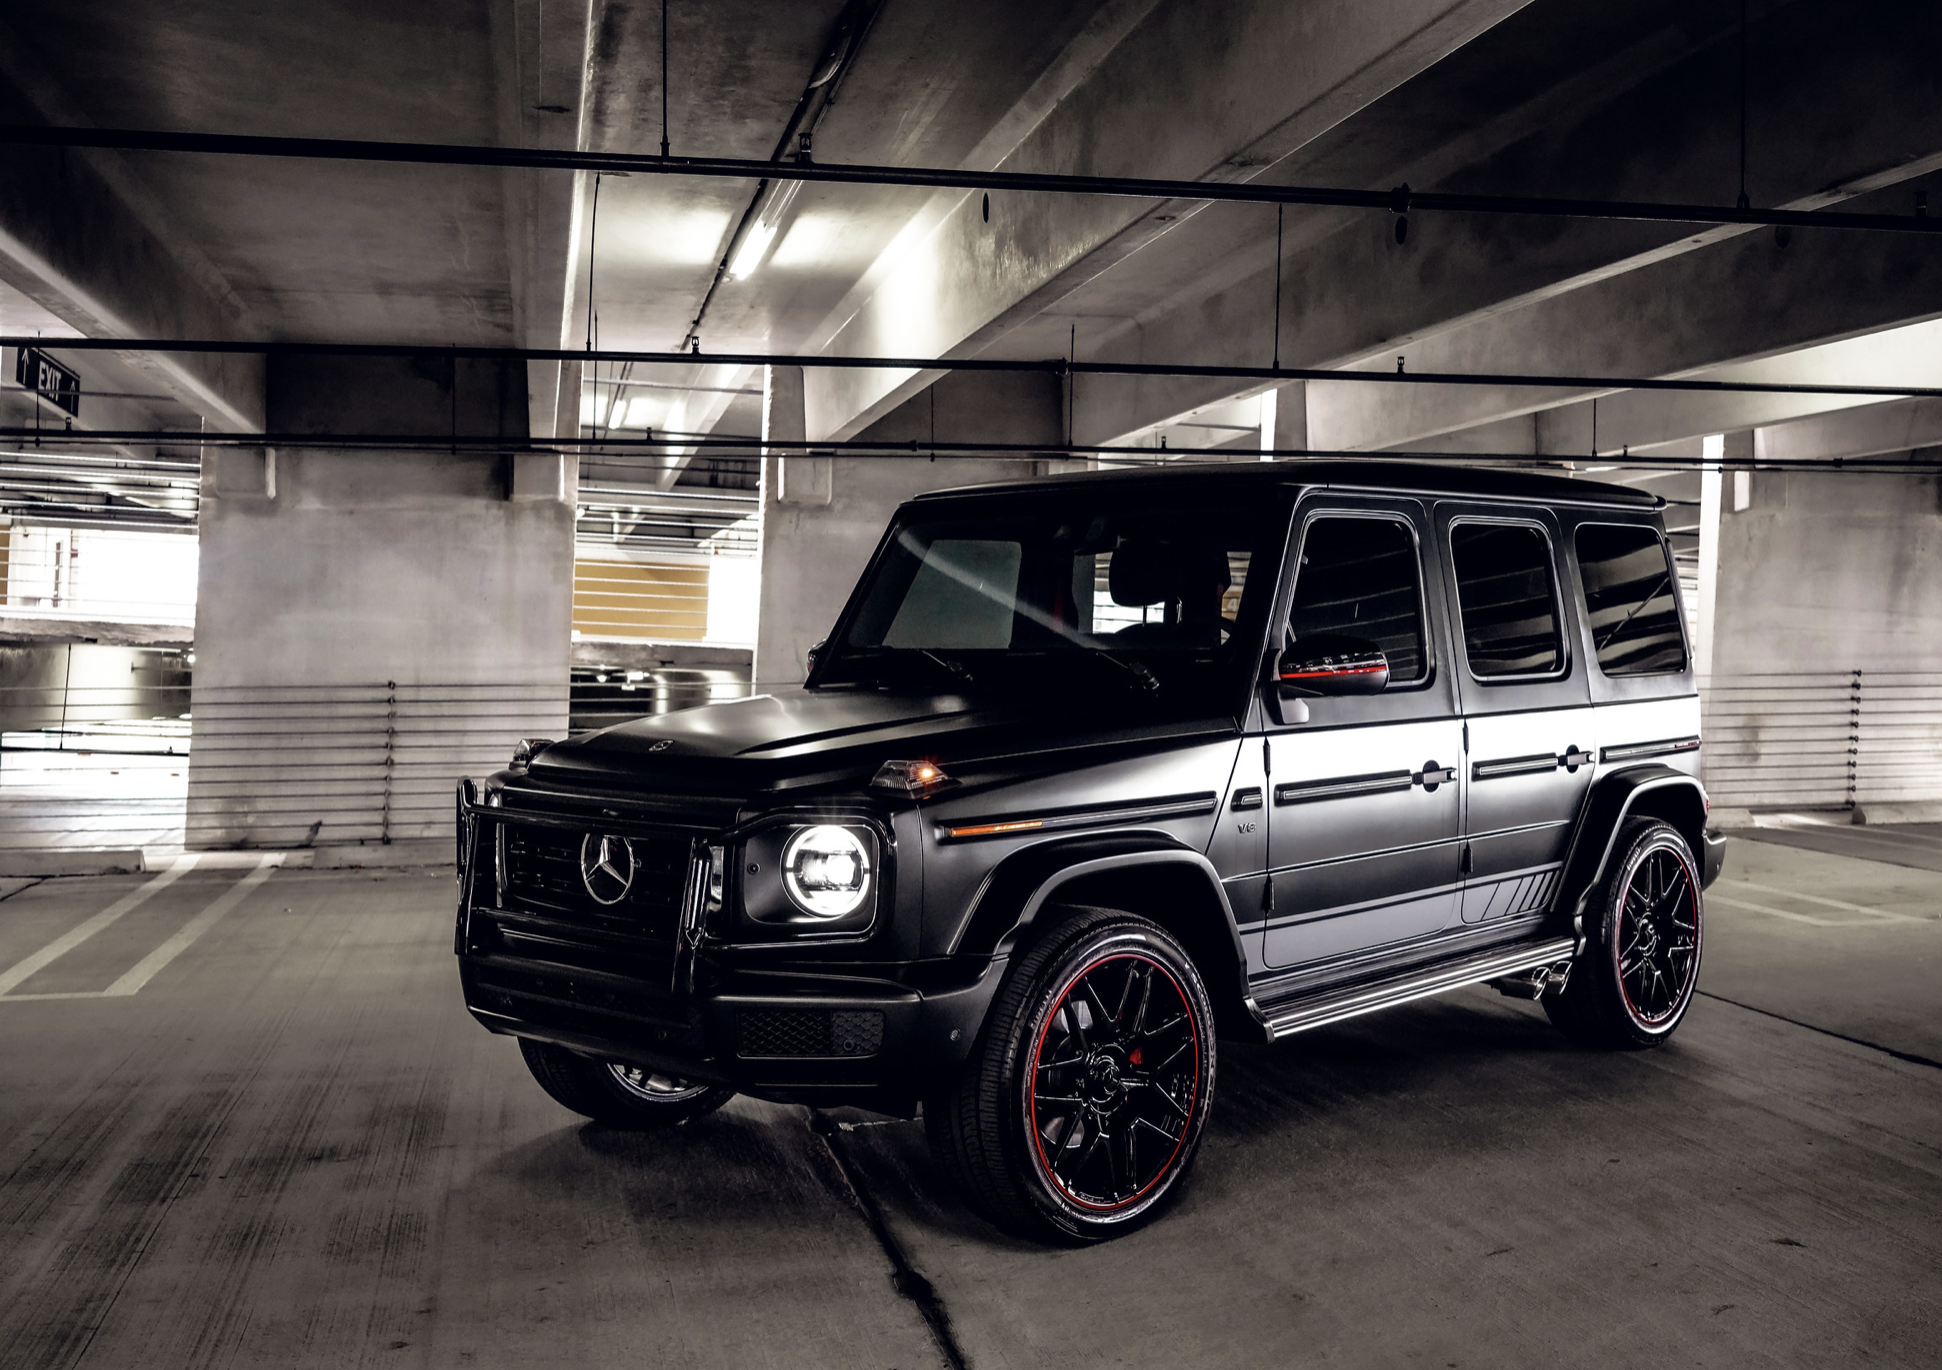 Image #2 of our  Mercedes AMG G63 Matt Black    In Miami Fort Lauderdale Palm Beach South Florida